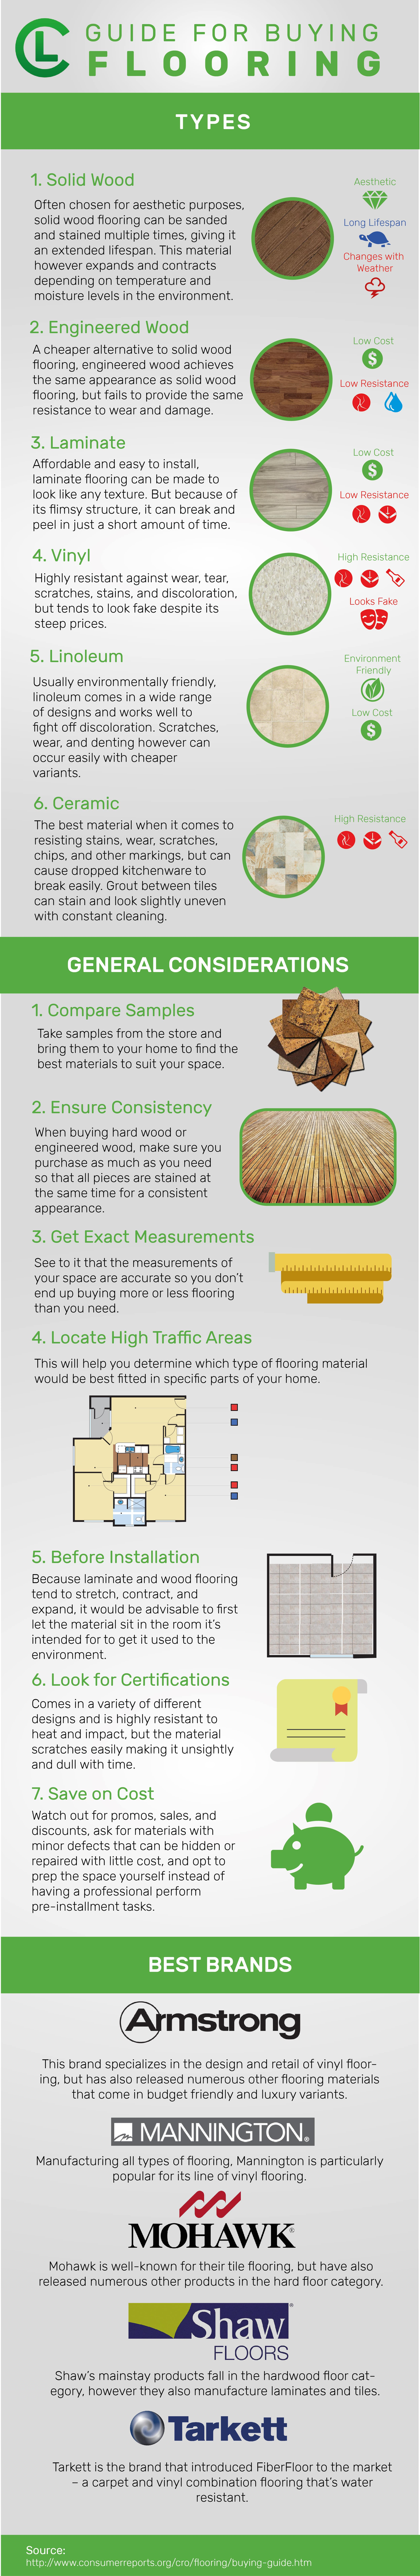 Guide For Buying Flooring Infographic